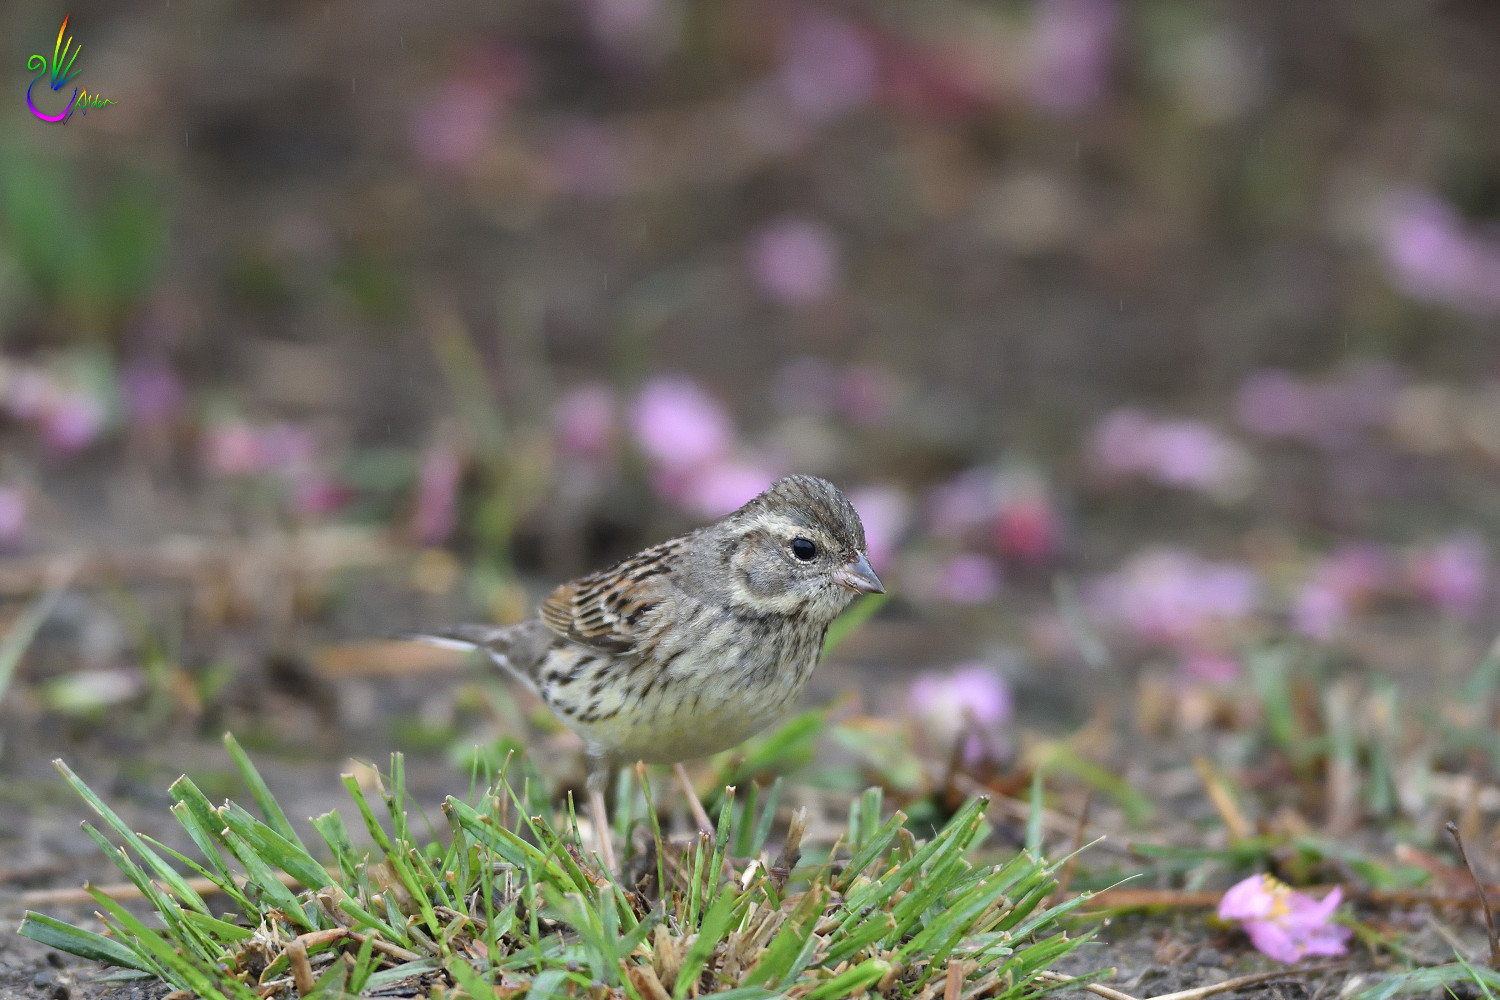 Black-faced_Bunting_7597